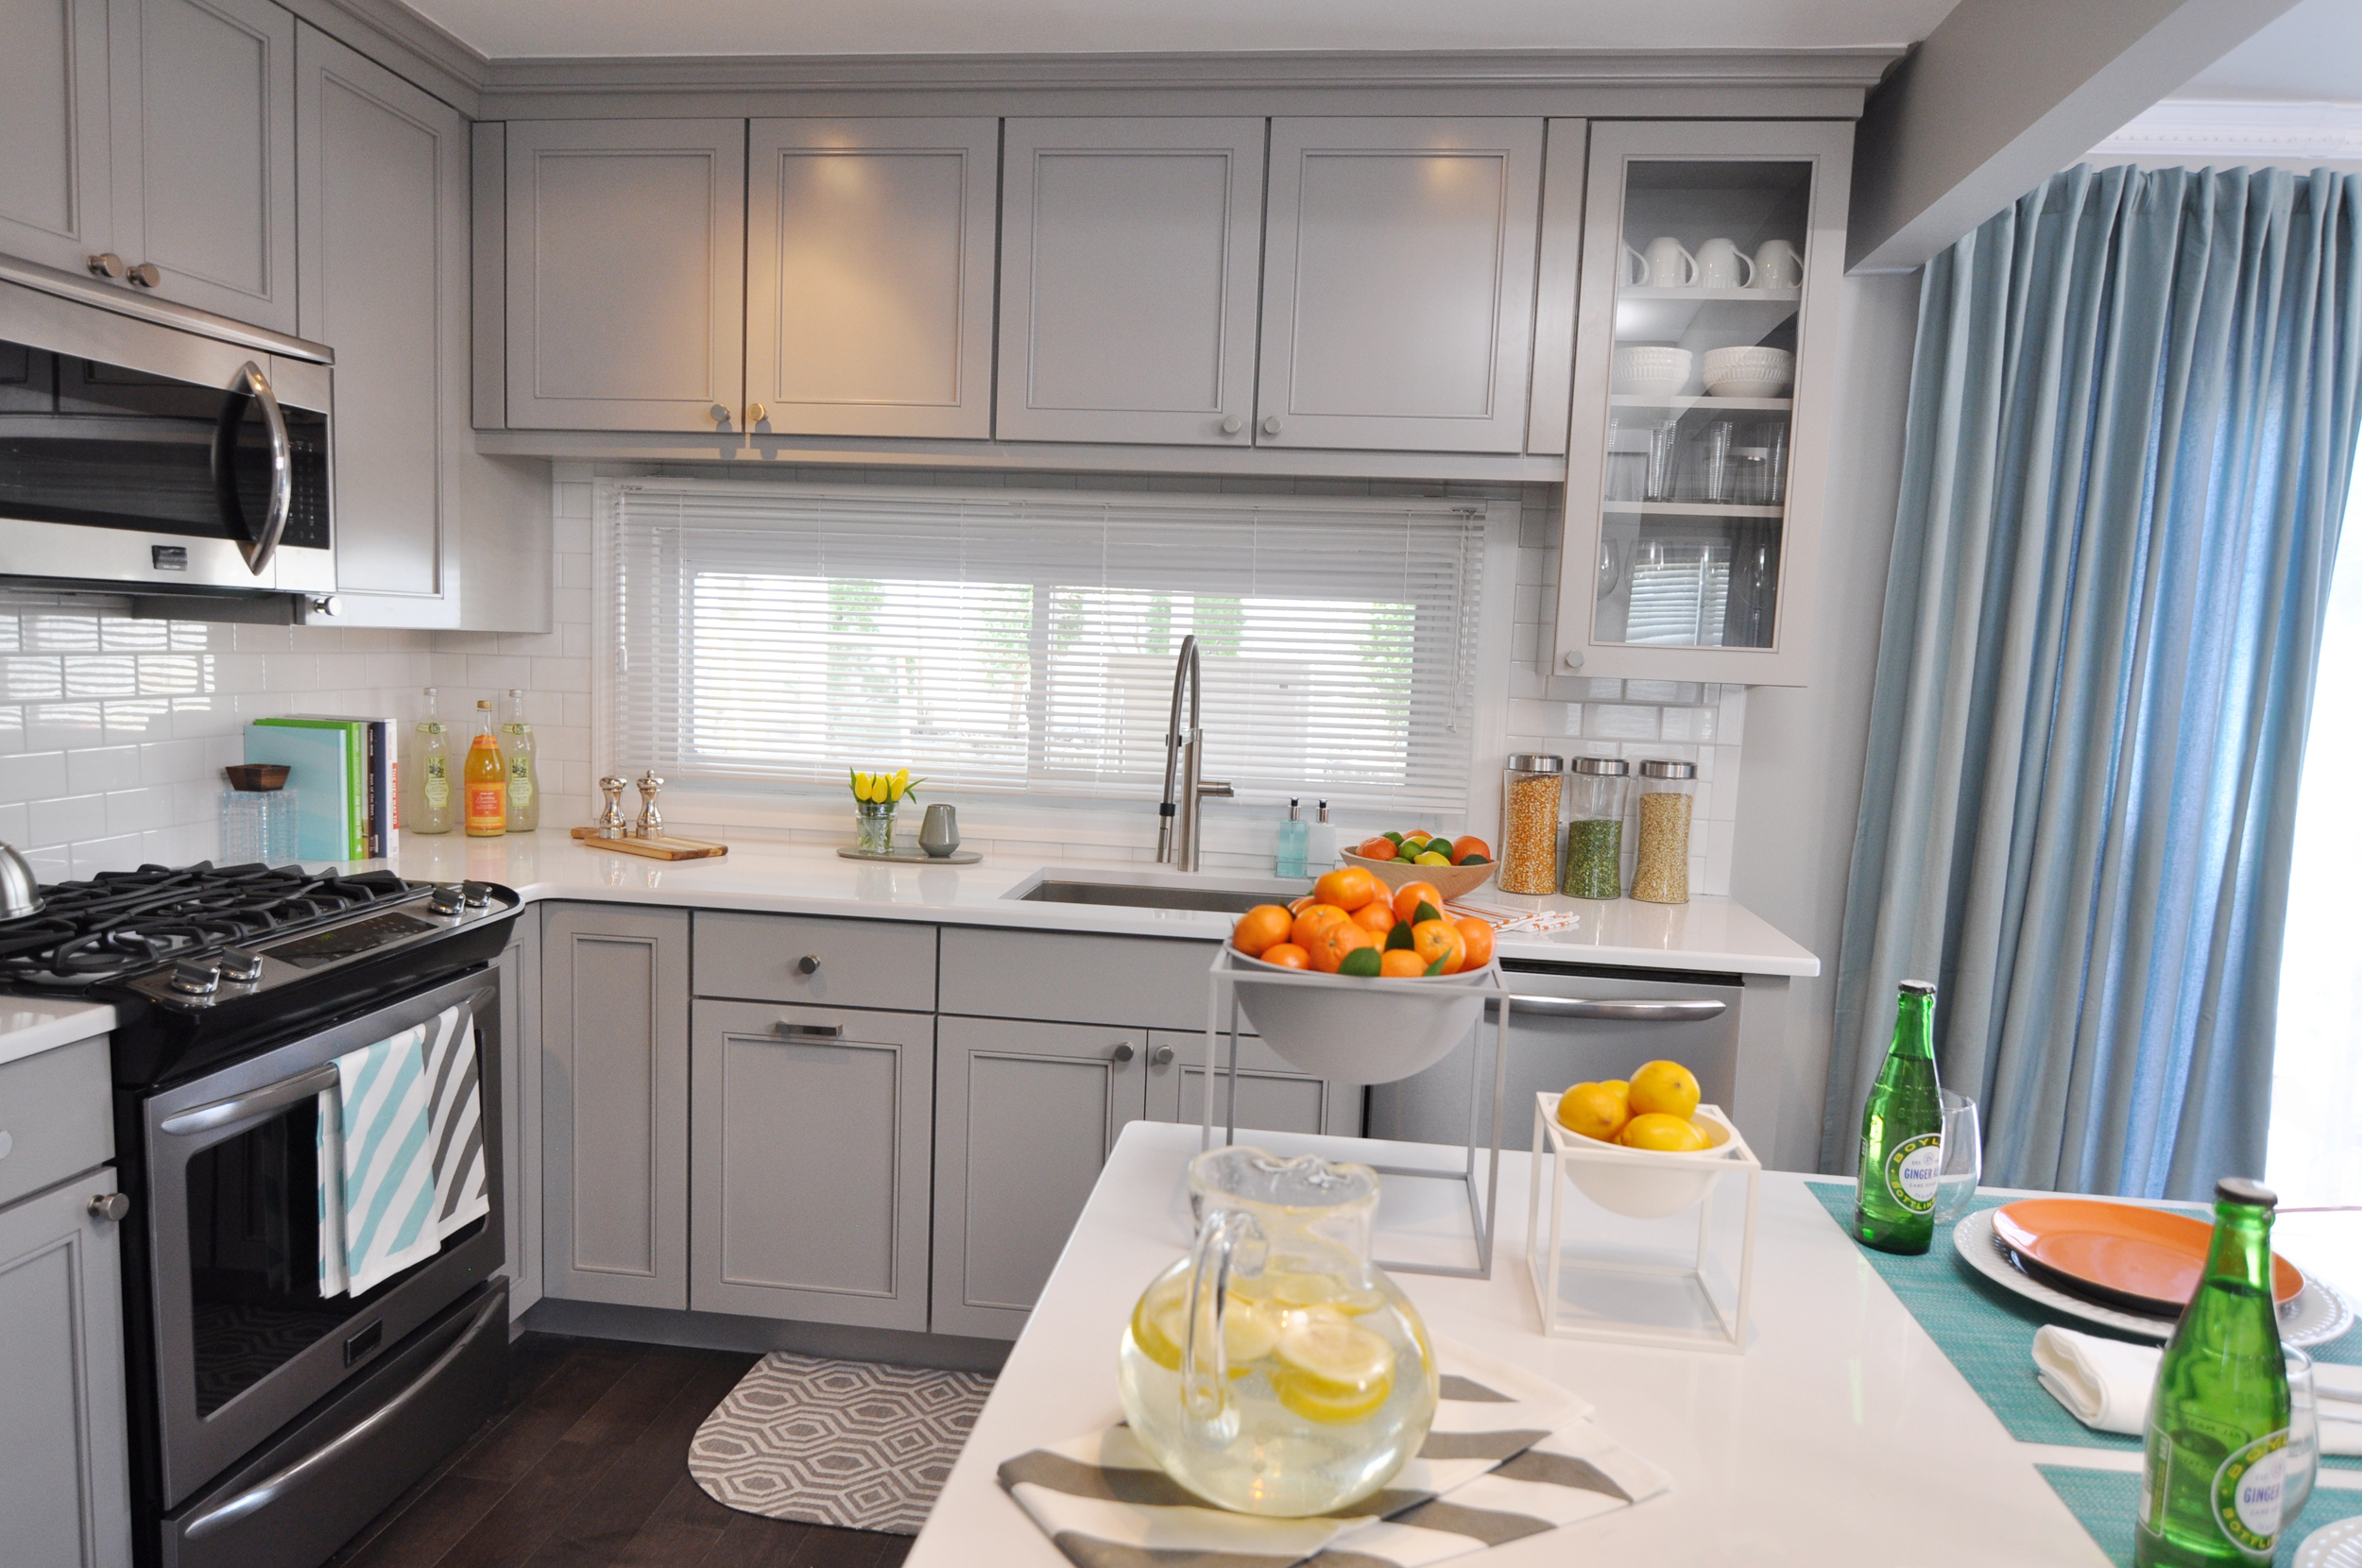 Kim Mitchell_Production Designer_HGTV_Buying and Selling with The Property Brothers_Season 3_Episode 316_Kitchen Remodel_Grey Kitchen Cabinets_Kitchen Staging.jpg